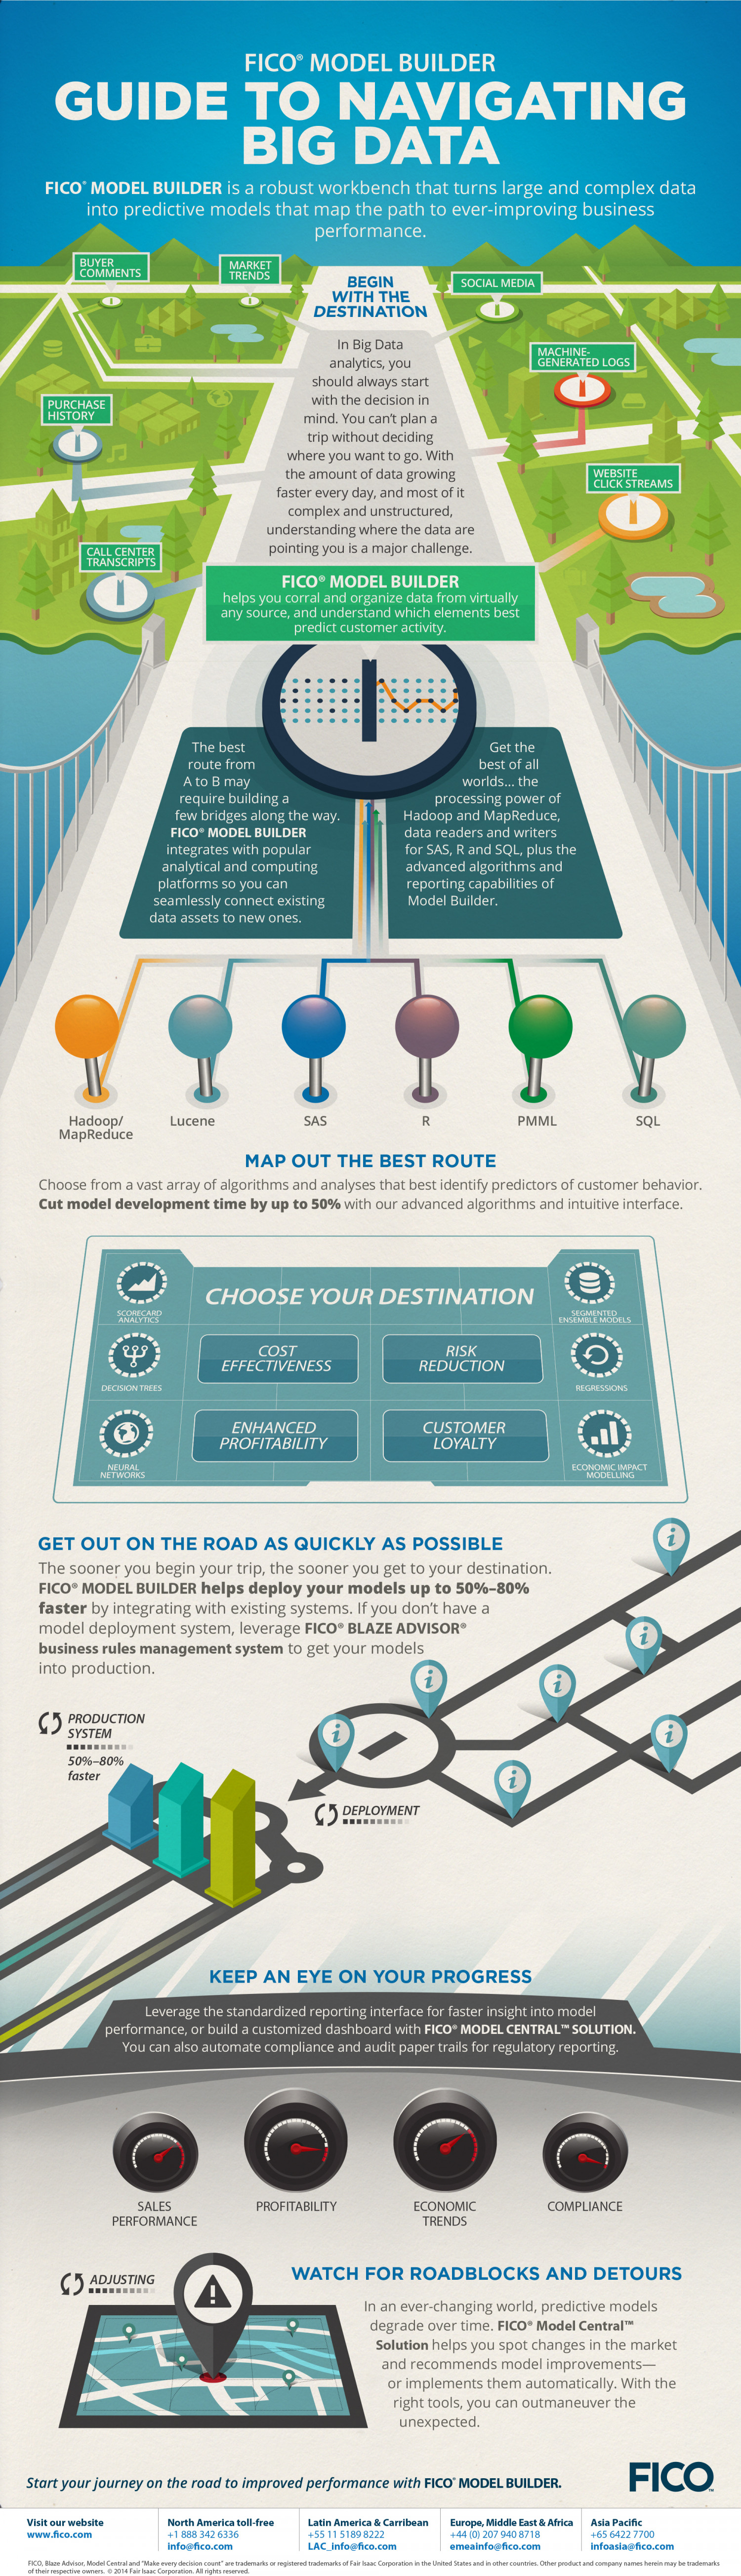 Guide to Navigating Big Data Infographic